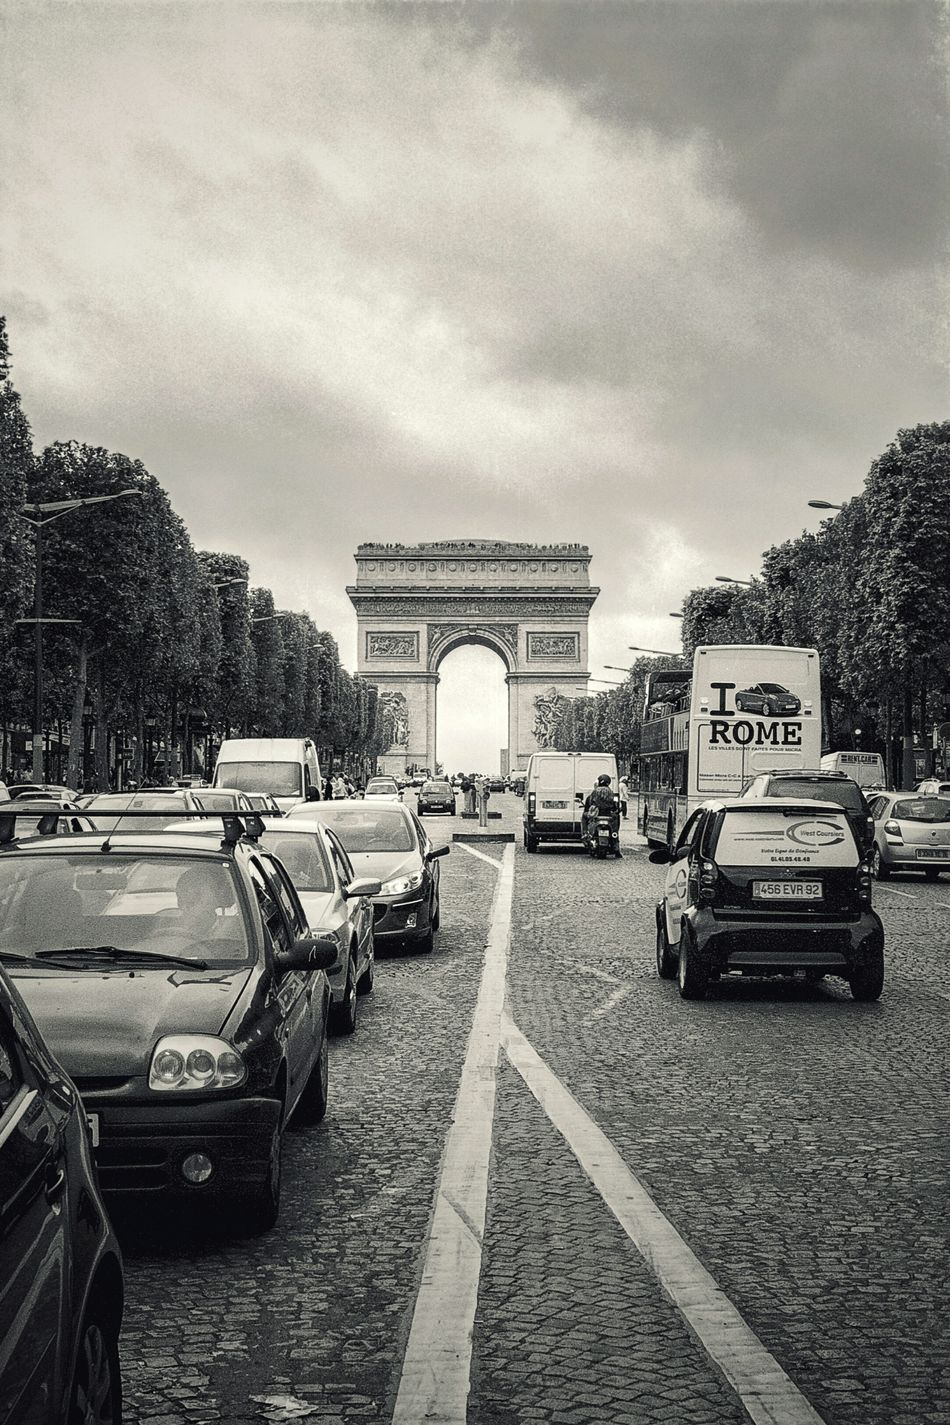 Paris street photography Transportation Built Structure Architecture No People Road Car Mode Of Transport Arc De Triomphe Arc De Triomphe, Paris Paris France Arc De Triomphe, Street Photography Streetphotography Film Film Is Not Dead Black & White Black And White Black And White Photography City